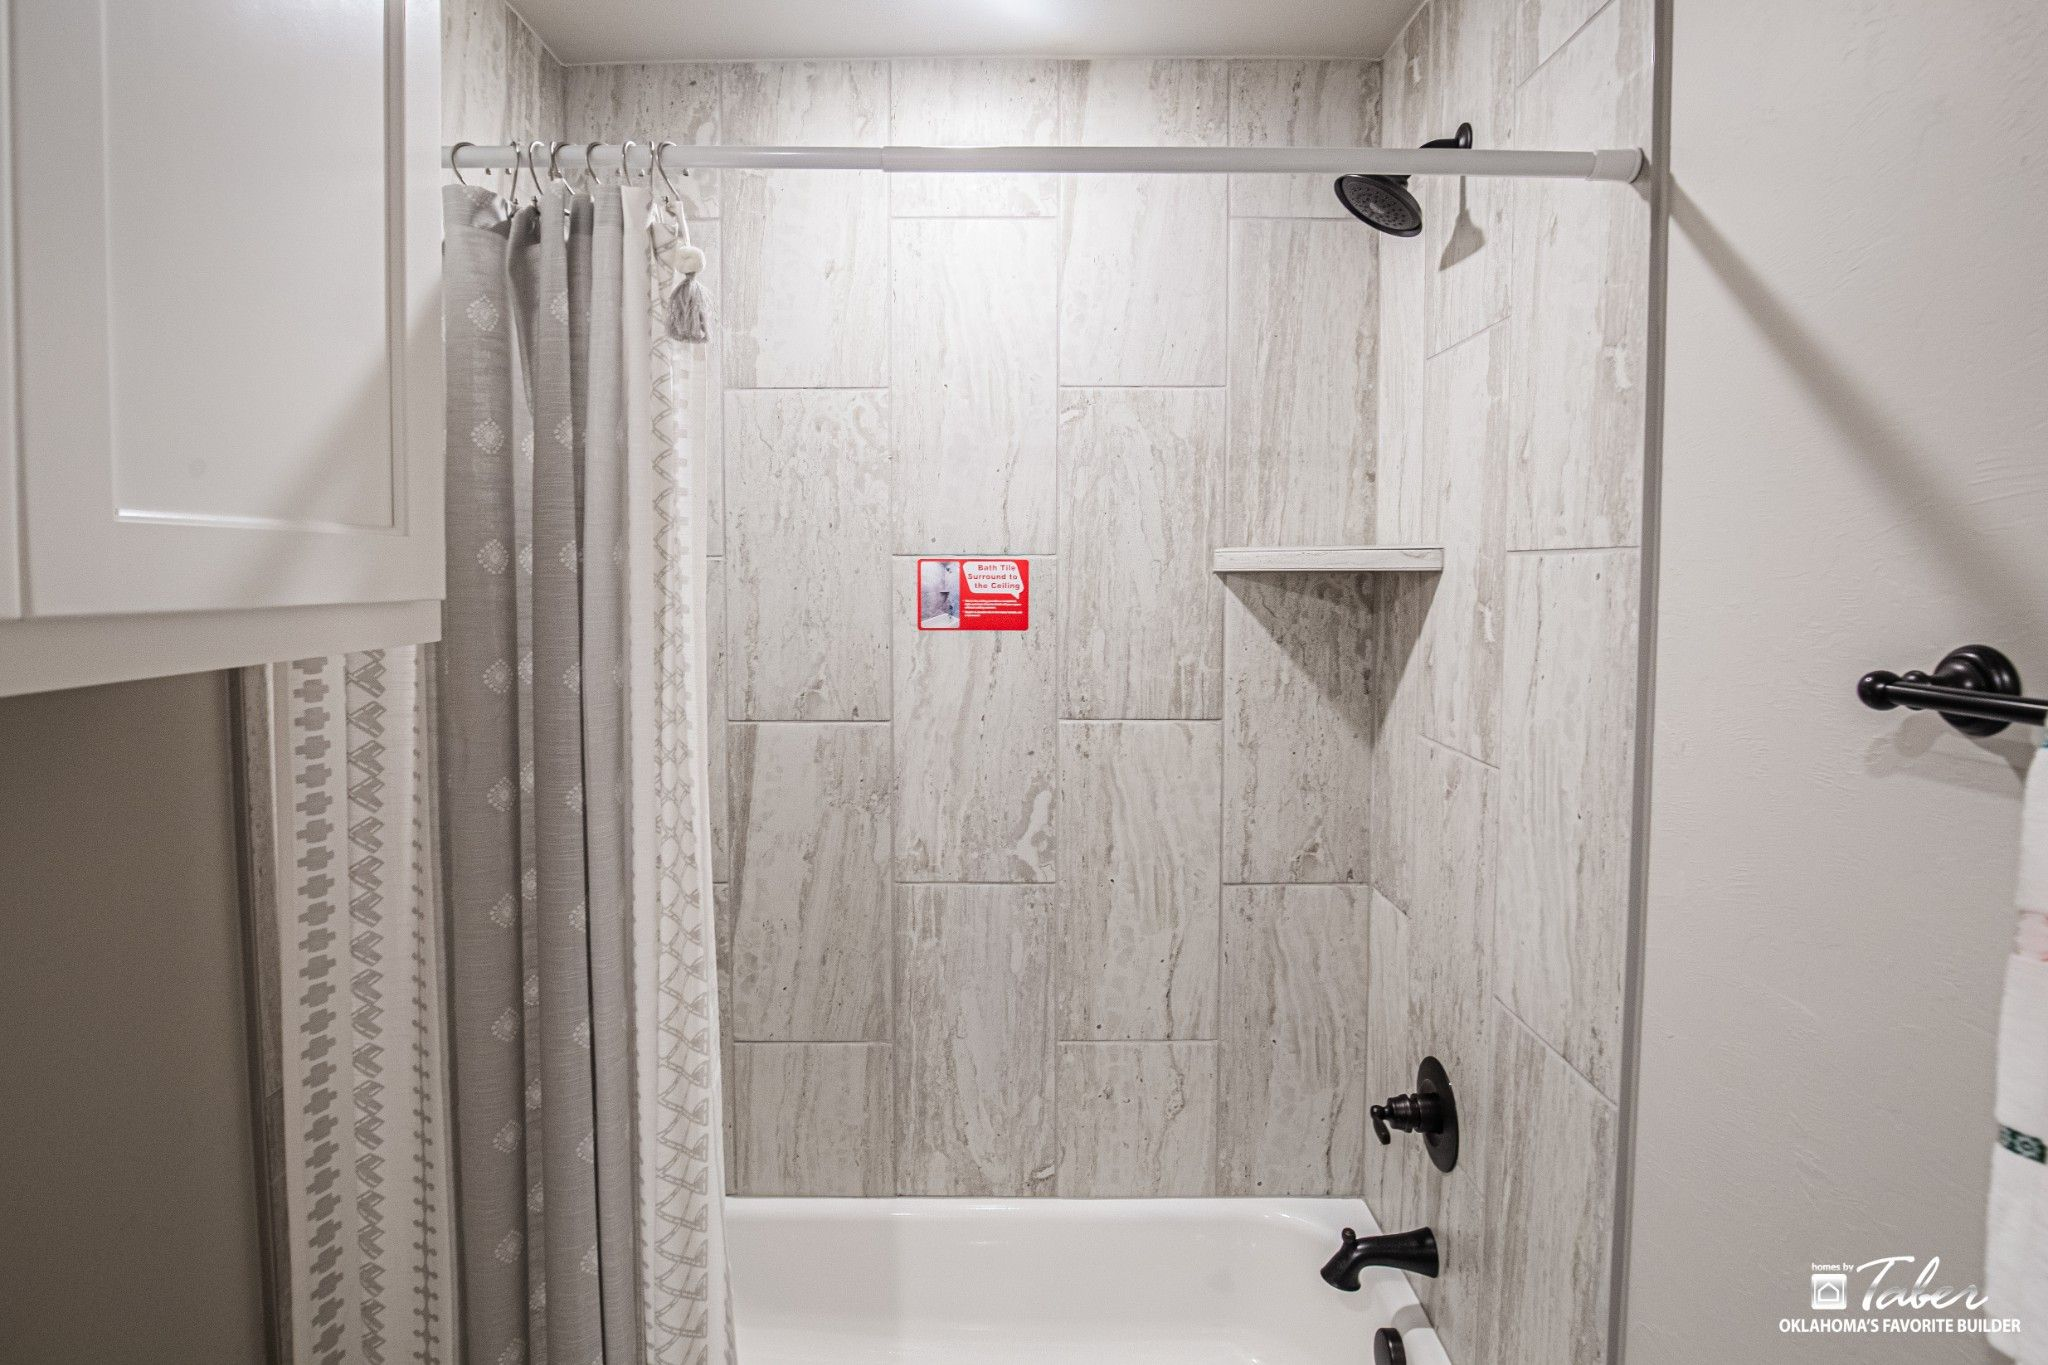 Bathroom featured in the Shiloh By Homes By Taber in Oklahoma City, OK